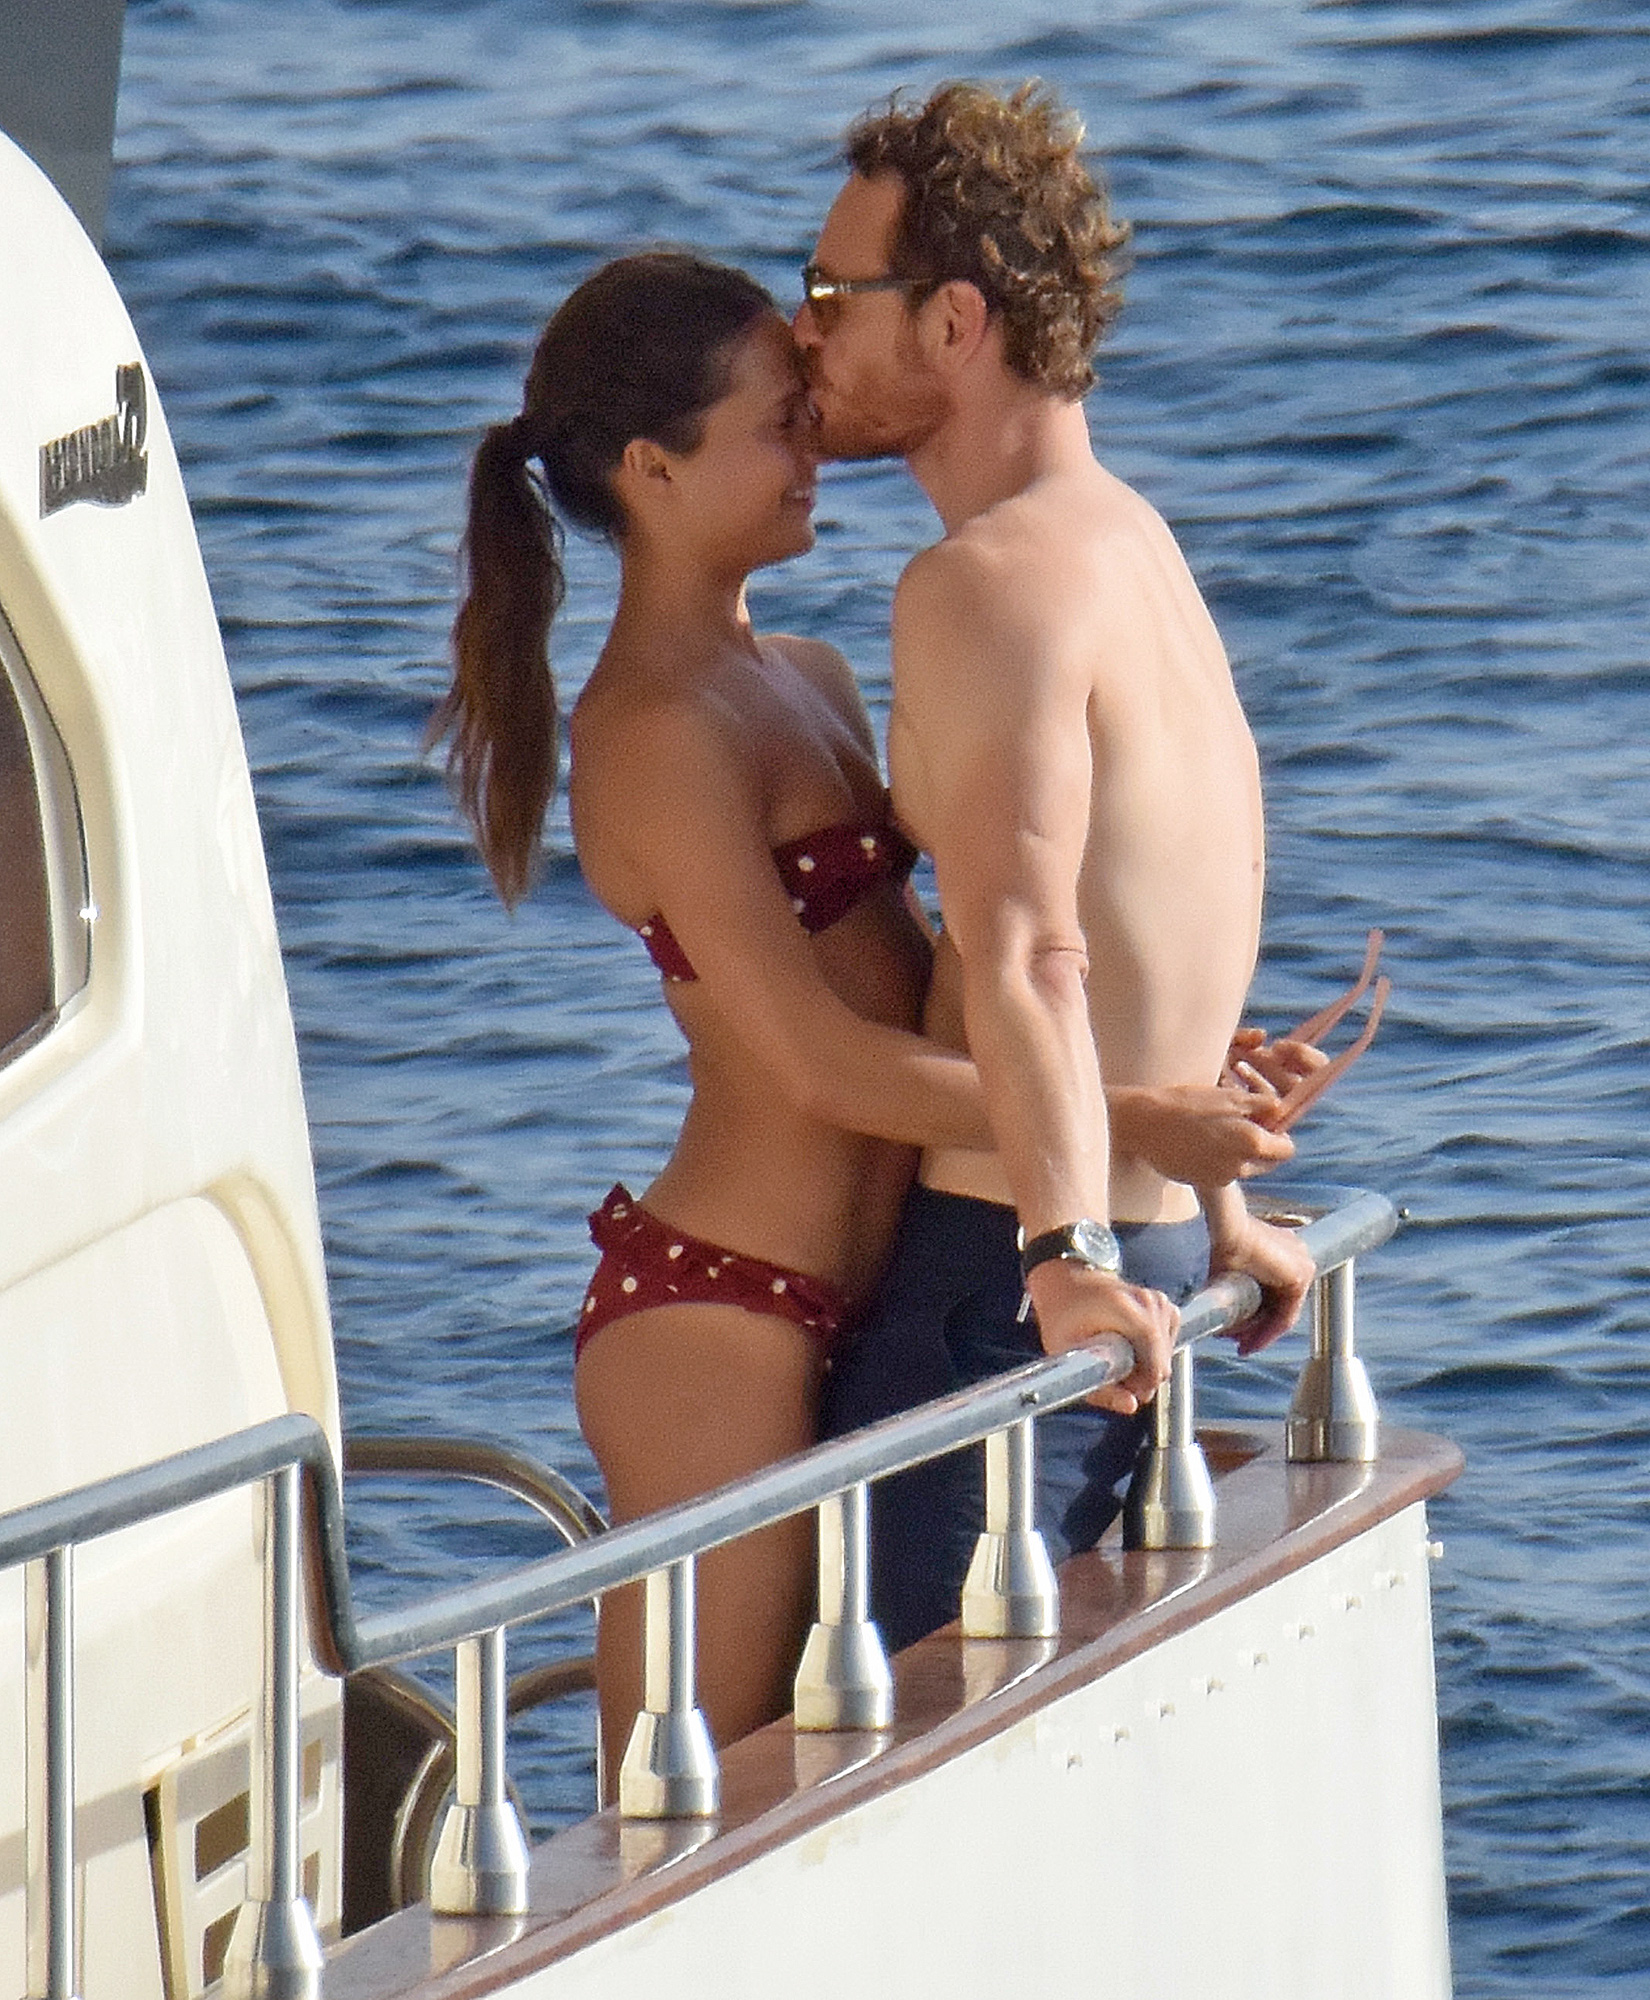 EXCLUSIVE: Alicia Vikander and Michael Fassbender on holidays in Formentera